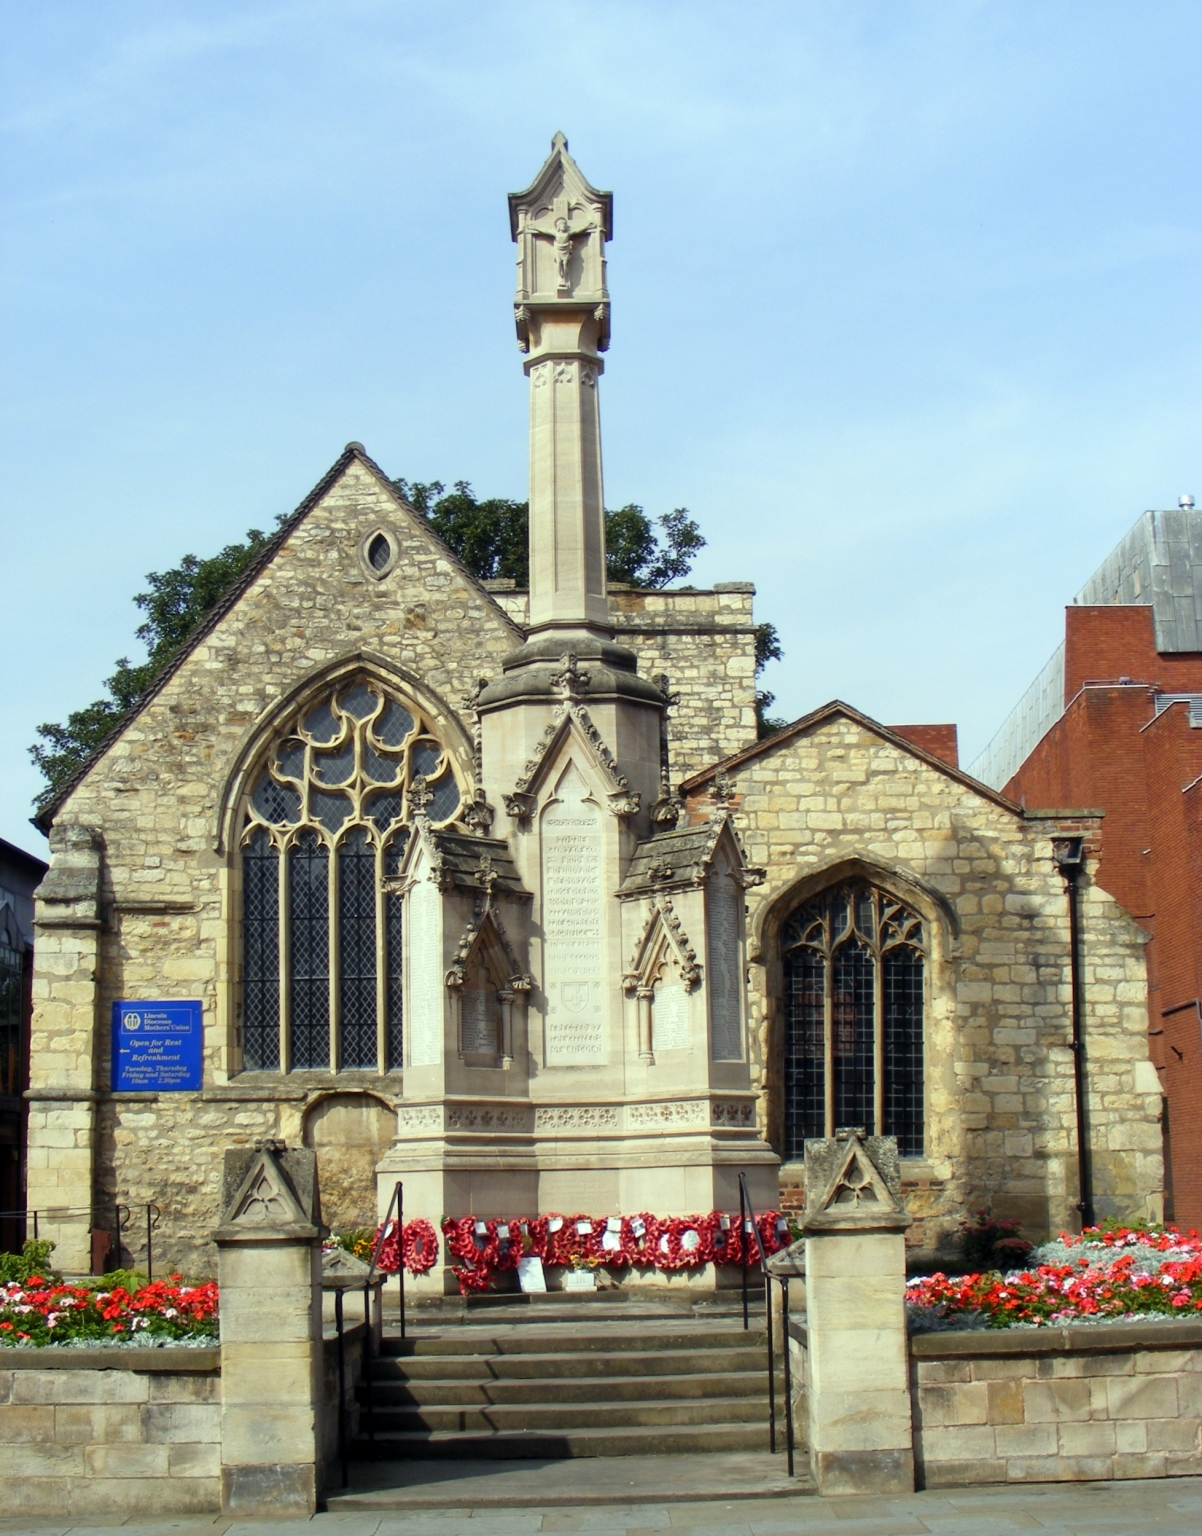 The City War Memorial on the High Street in front of St Benedict's.